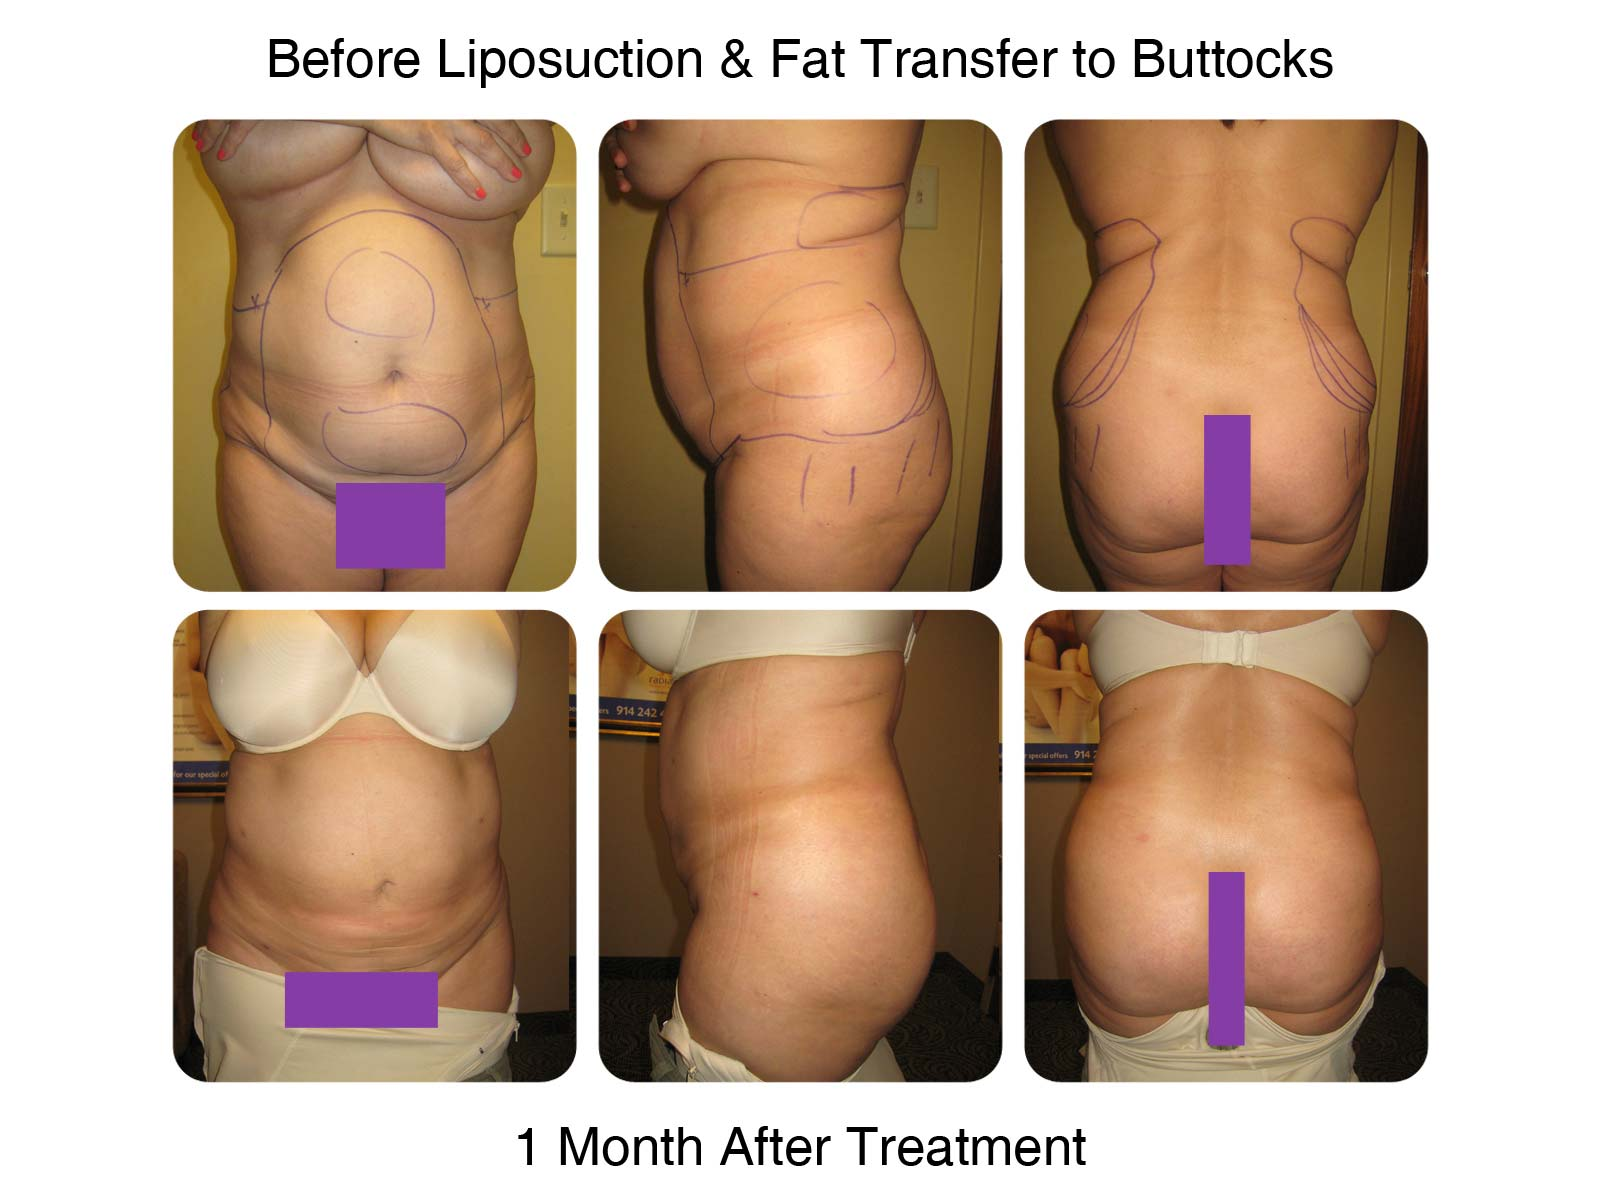 Brazilian Butt Lift Fat Transfer Before and After 4